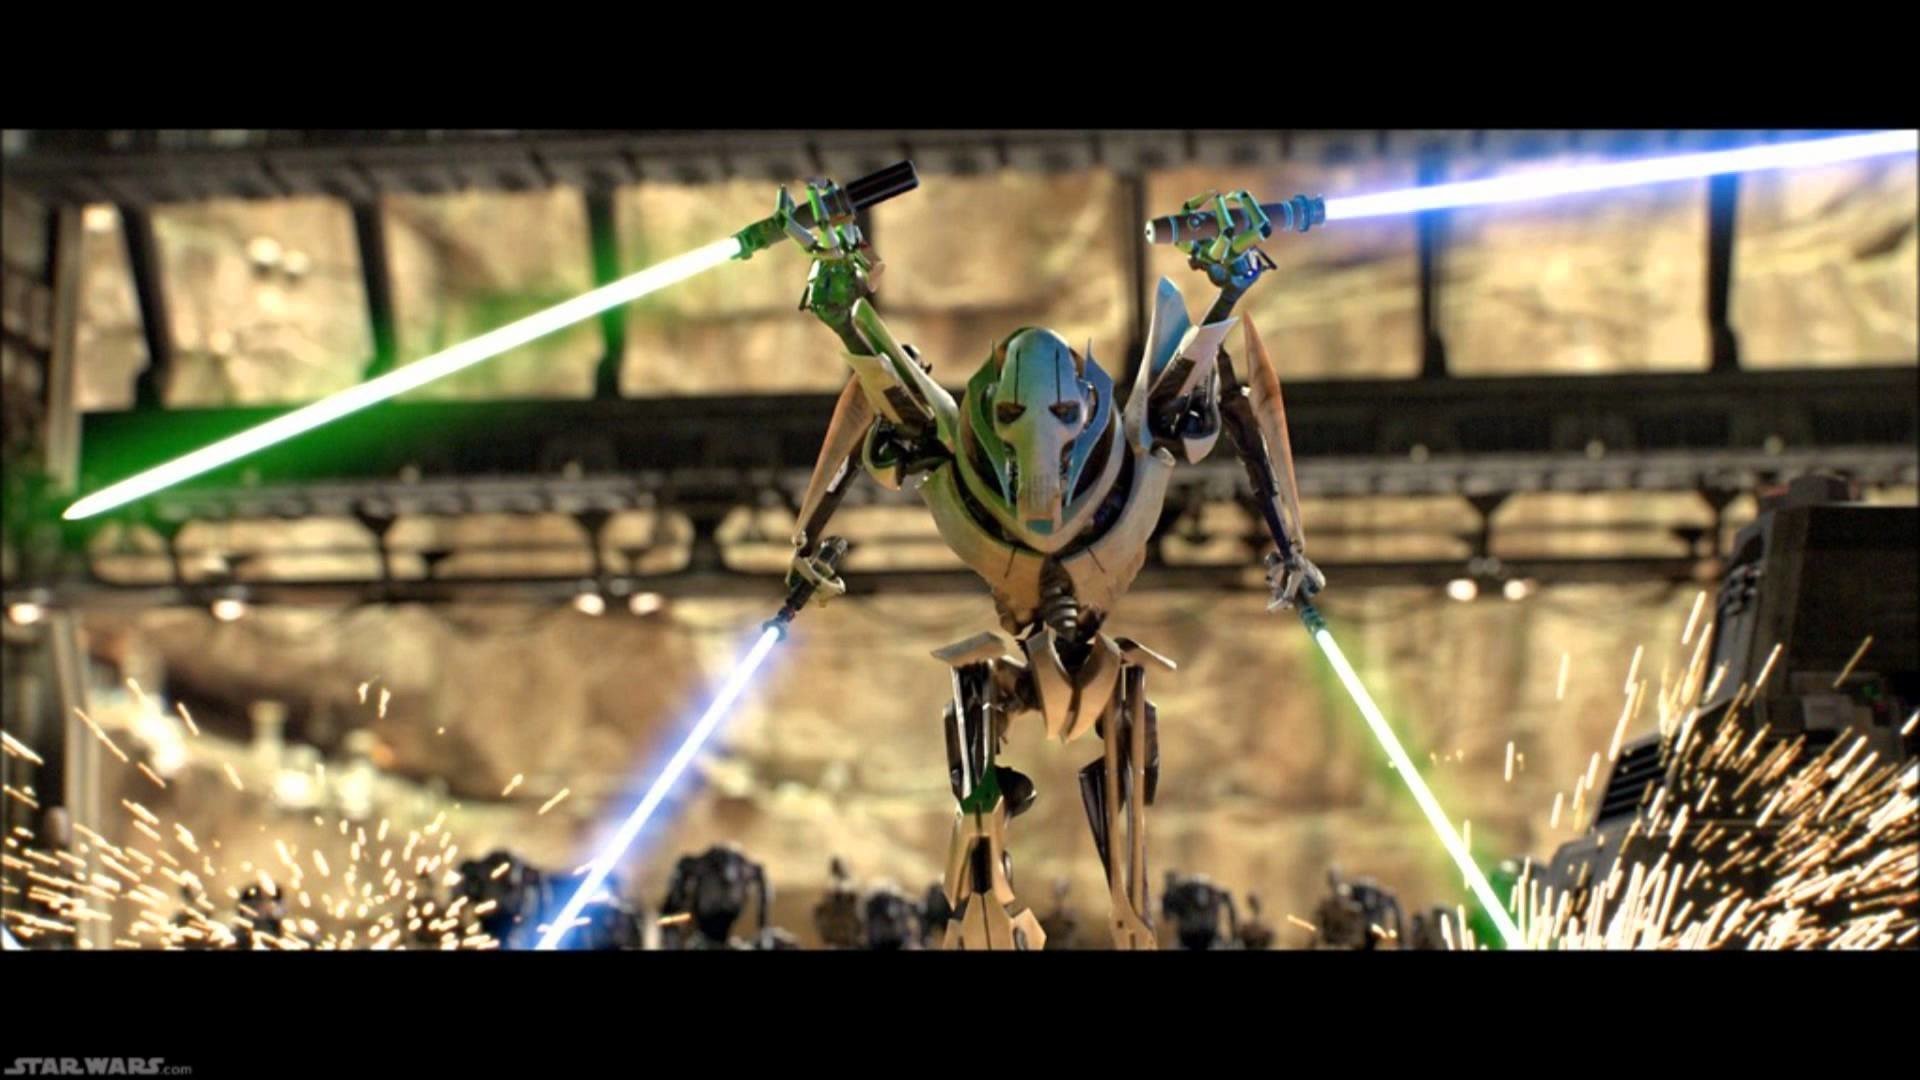 General Grievous star wars tune revenge of the sith